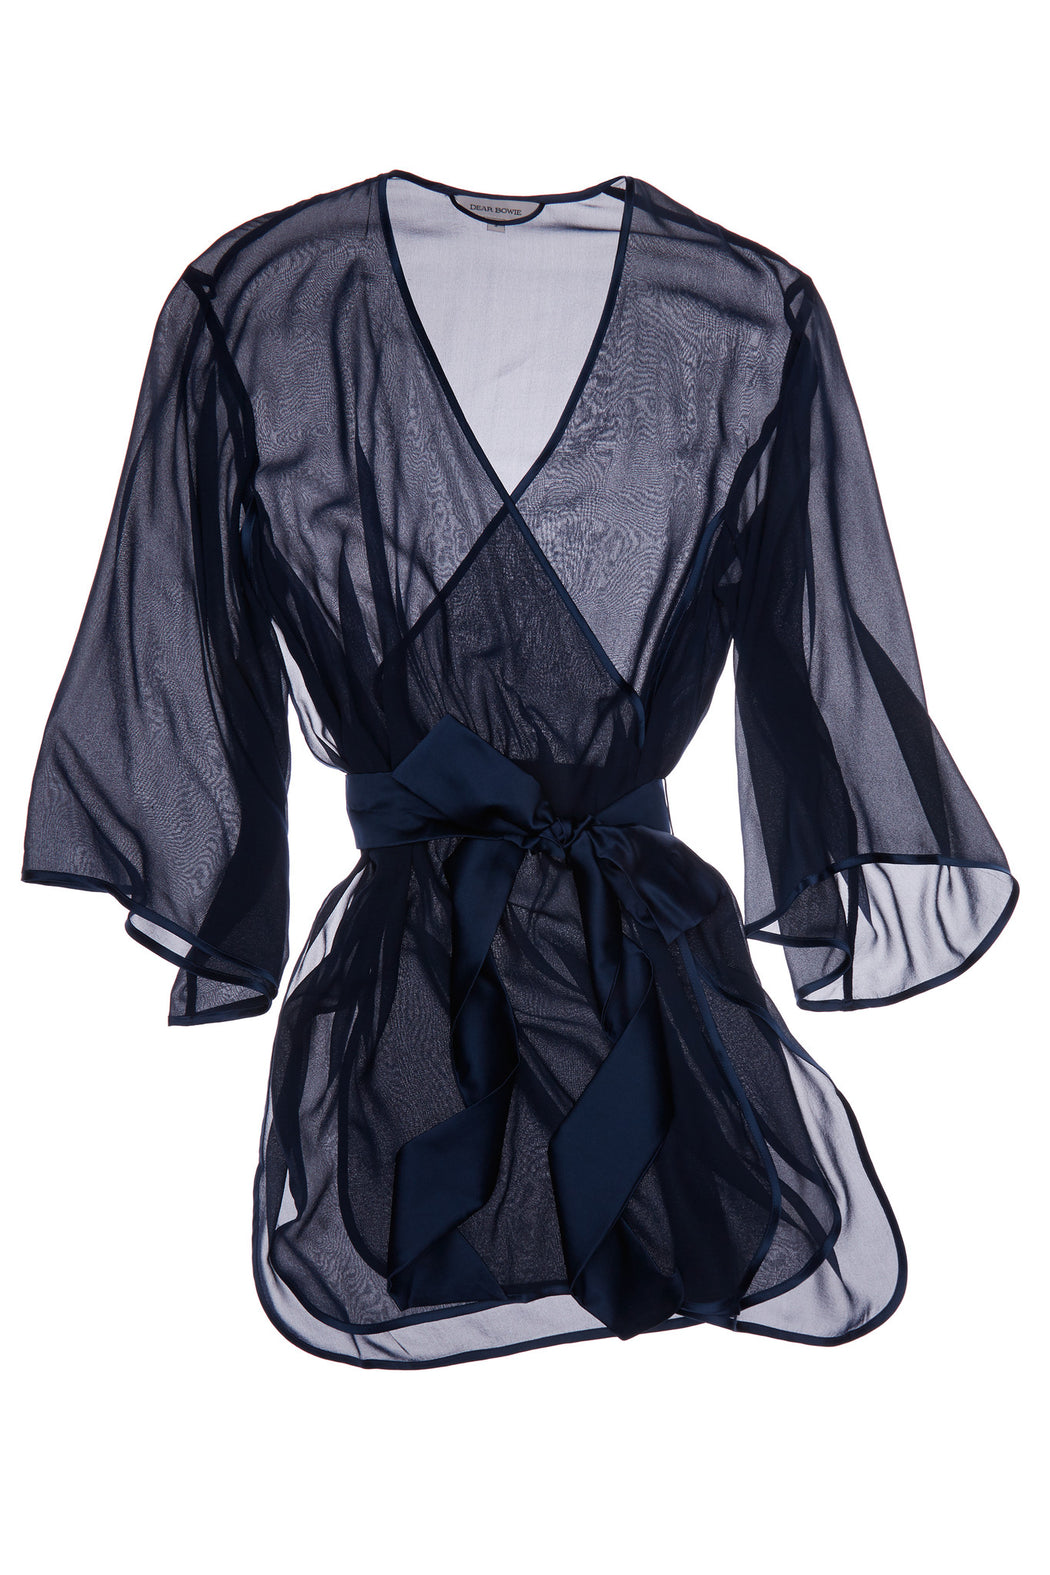 Kimono Riley Navy Sheer Dear Bowie Workingirls luxury lingerie